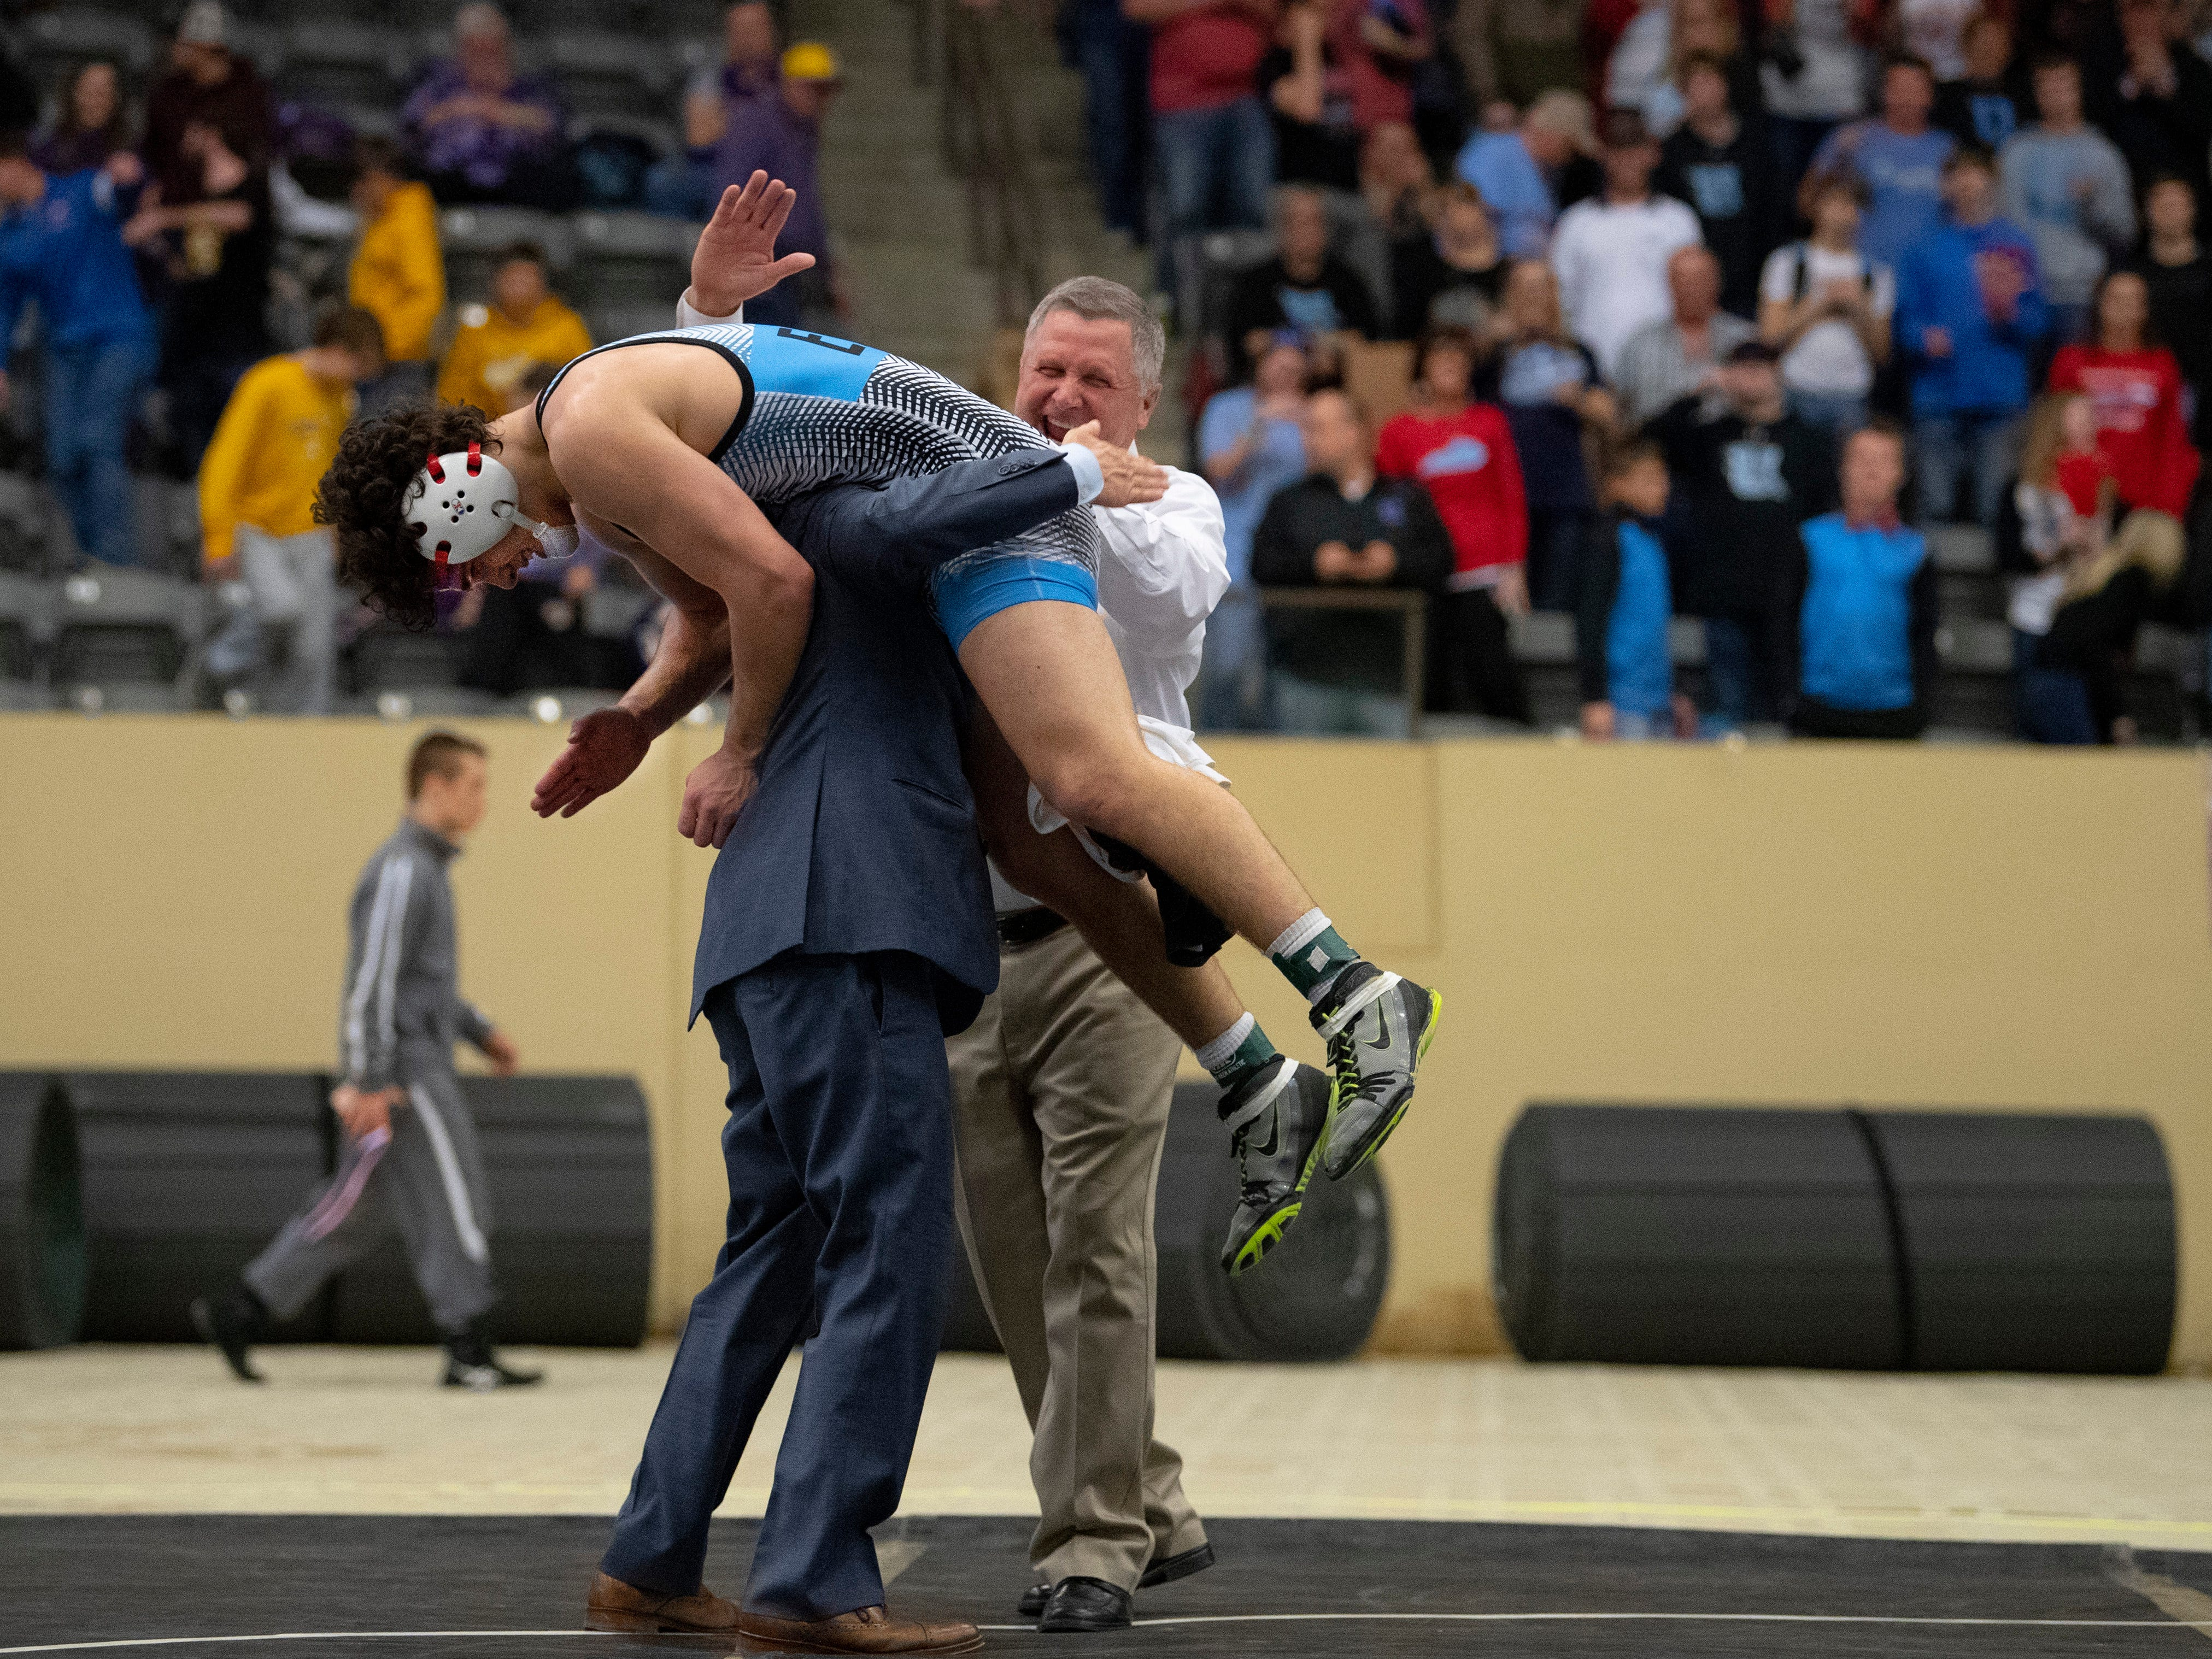 Micah Ervin gets a celebratory lift from his dad and coach, Robert Ervin, as his uncle and coach, Tim Ervin, gives him a slap on the back after winning the 170-pound state championship at the KHSAA State Wrestling Championships at the Alltech Arena in Lexington, Ky., Saturday afternoon.